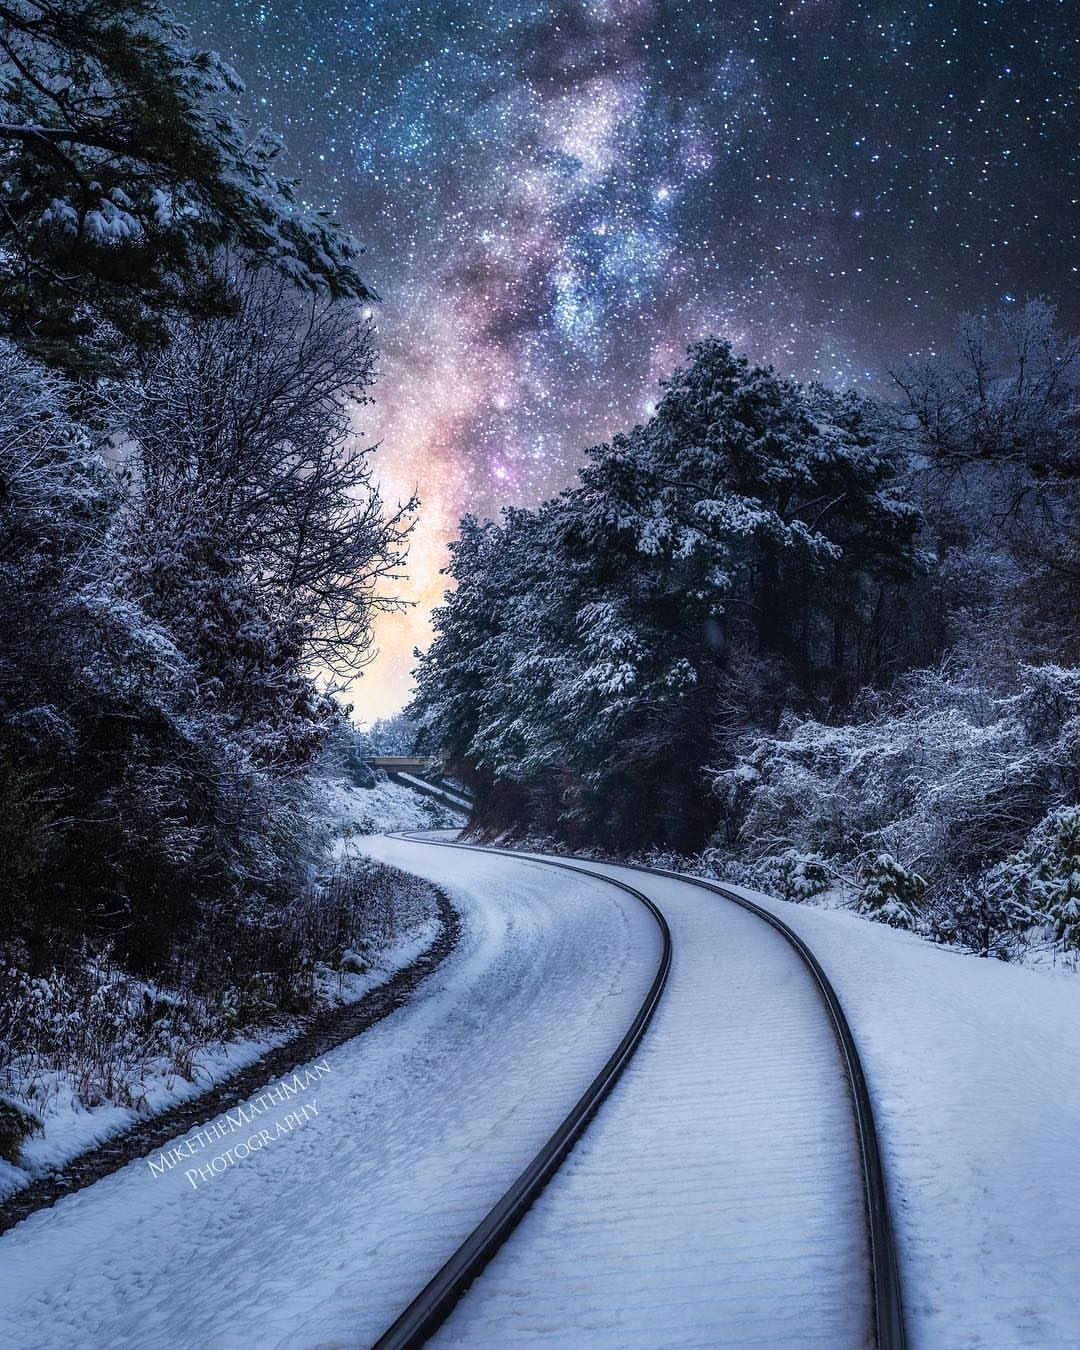 Photography Landscape On Instagram The Amazing Winter Landscape In The Night Wh With Images Winter Landscape Winter Landscape Photography Winter Snow Photography